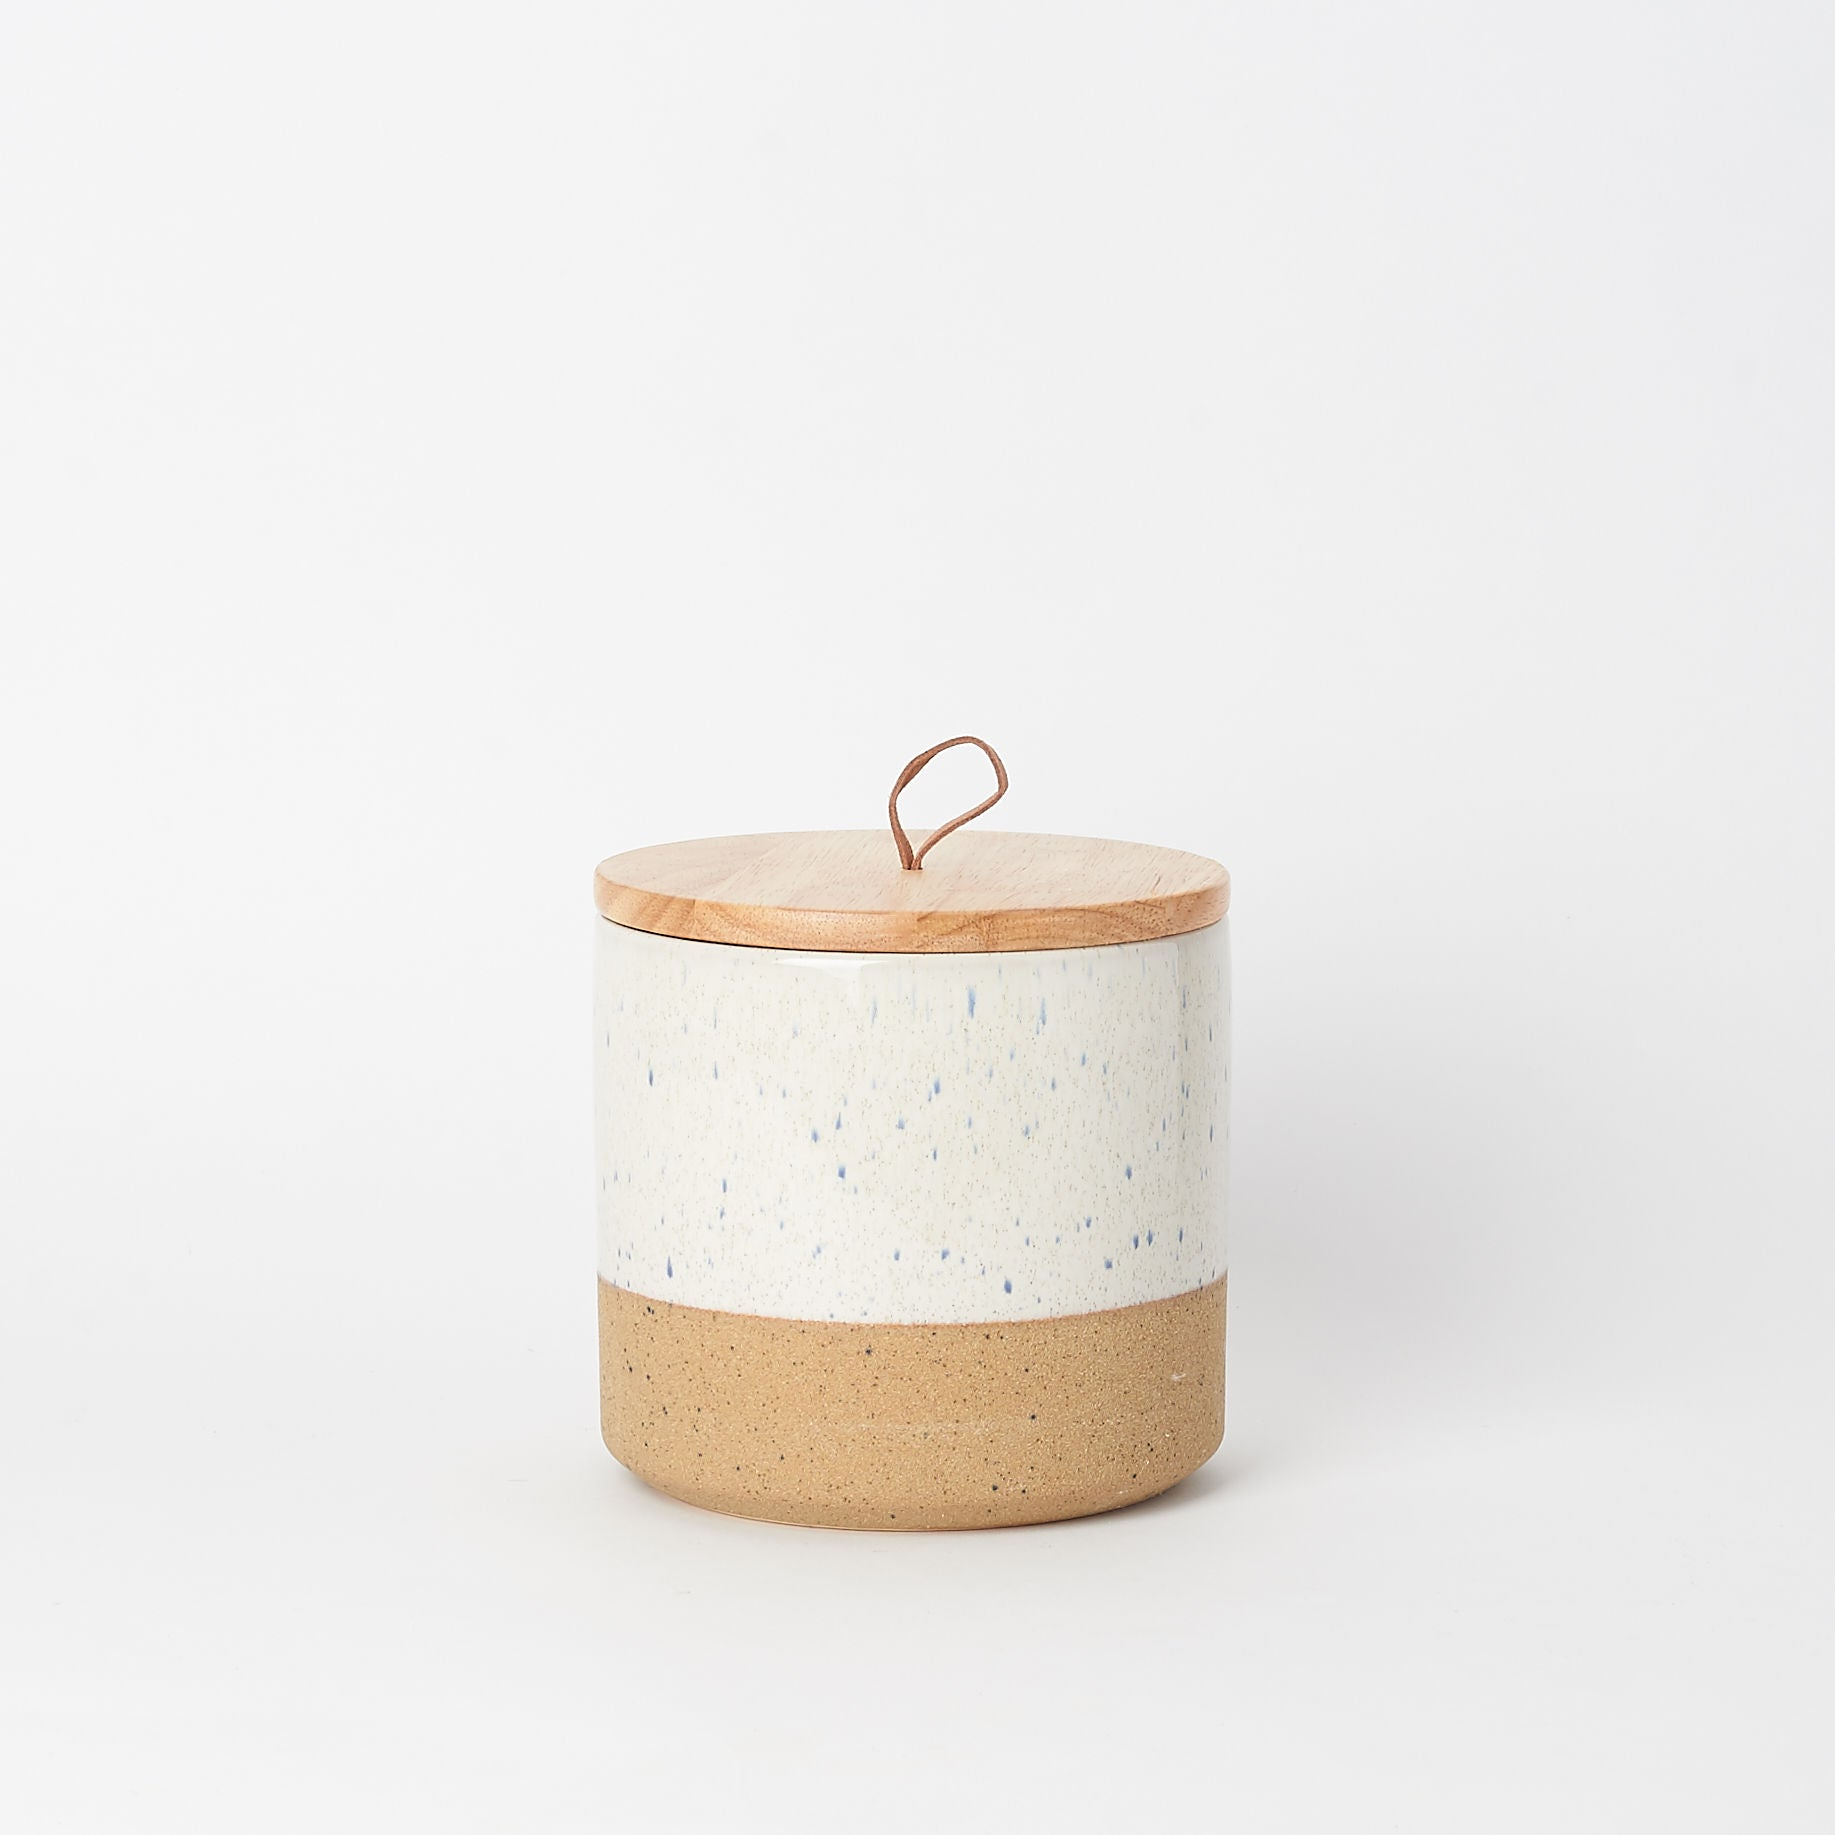 Speckled Stoneware Jar